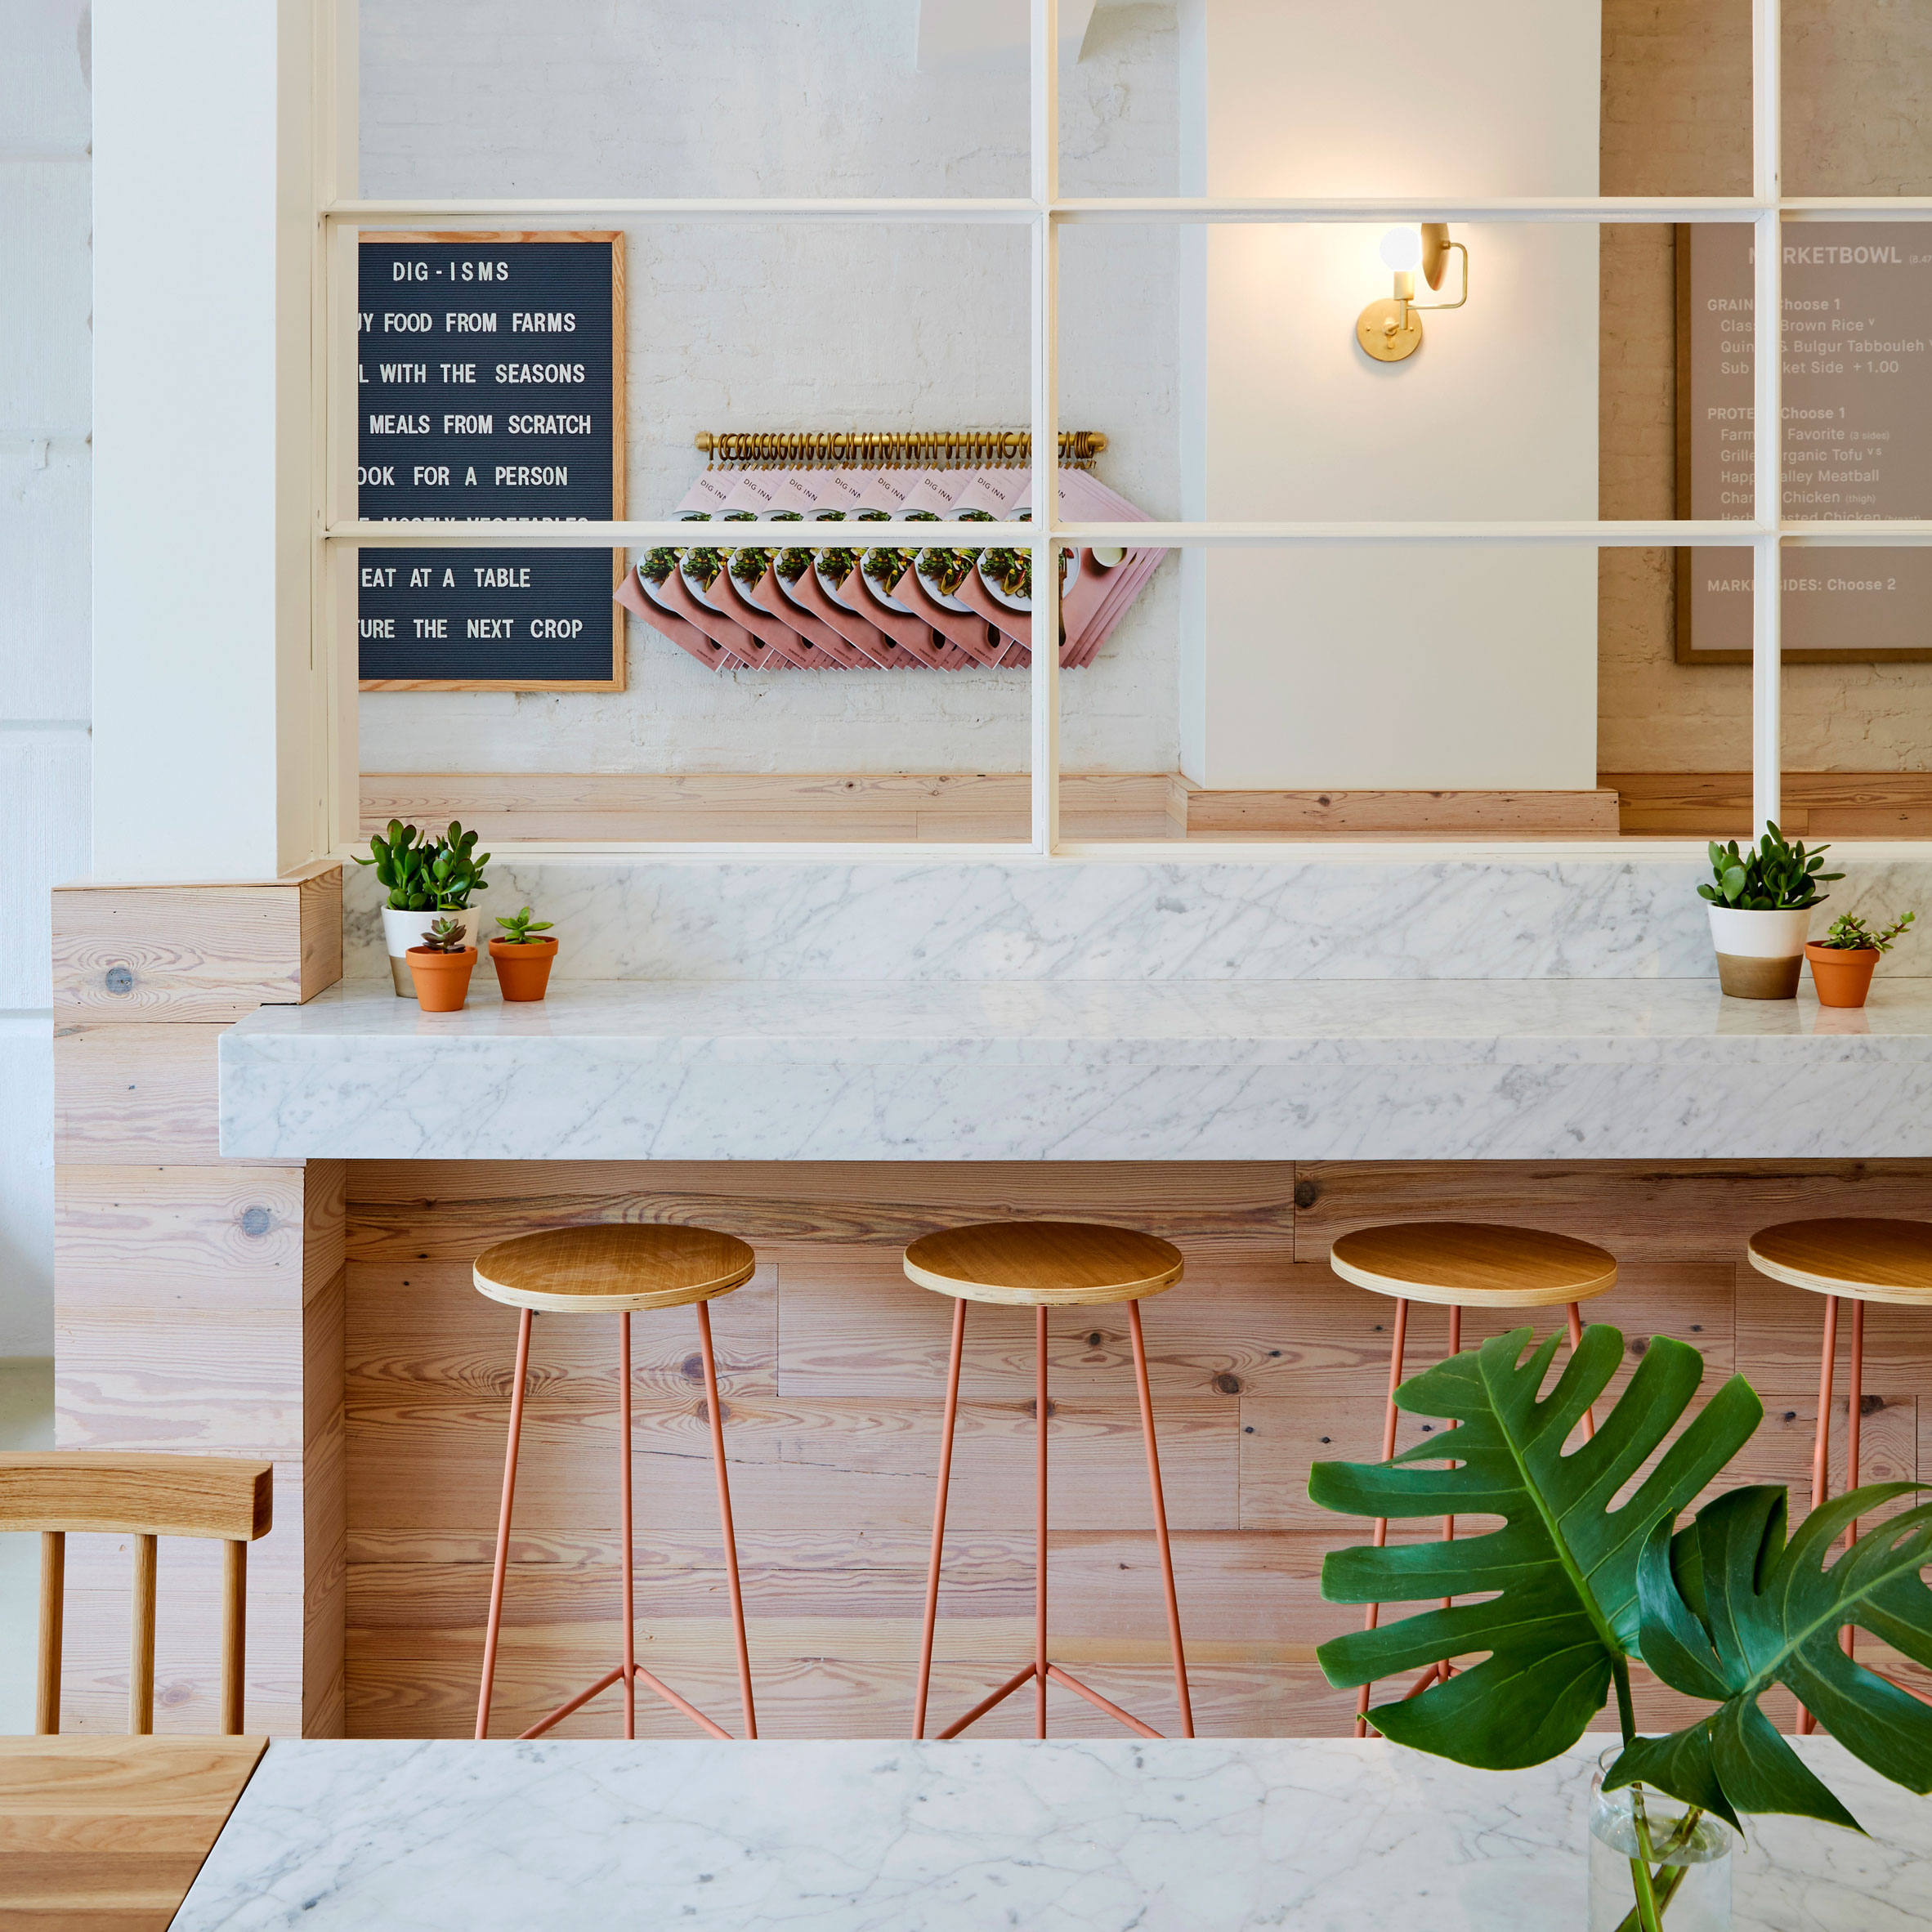 ASH NYC Adds Pops Of Pink To Dig Inn Boston Restaurant